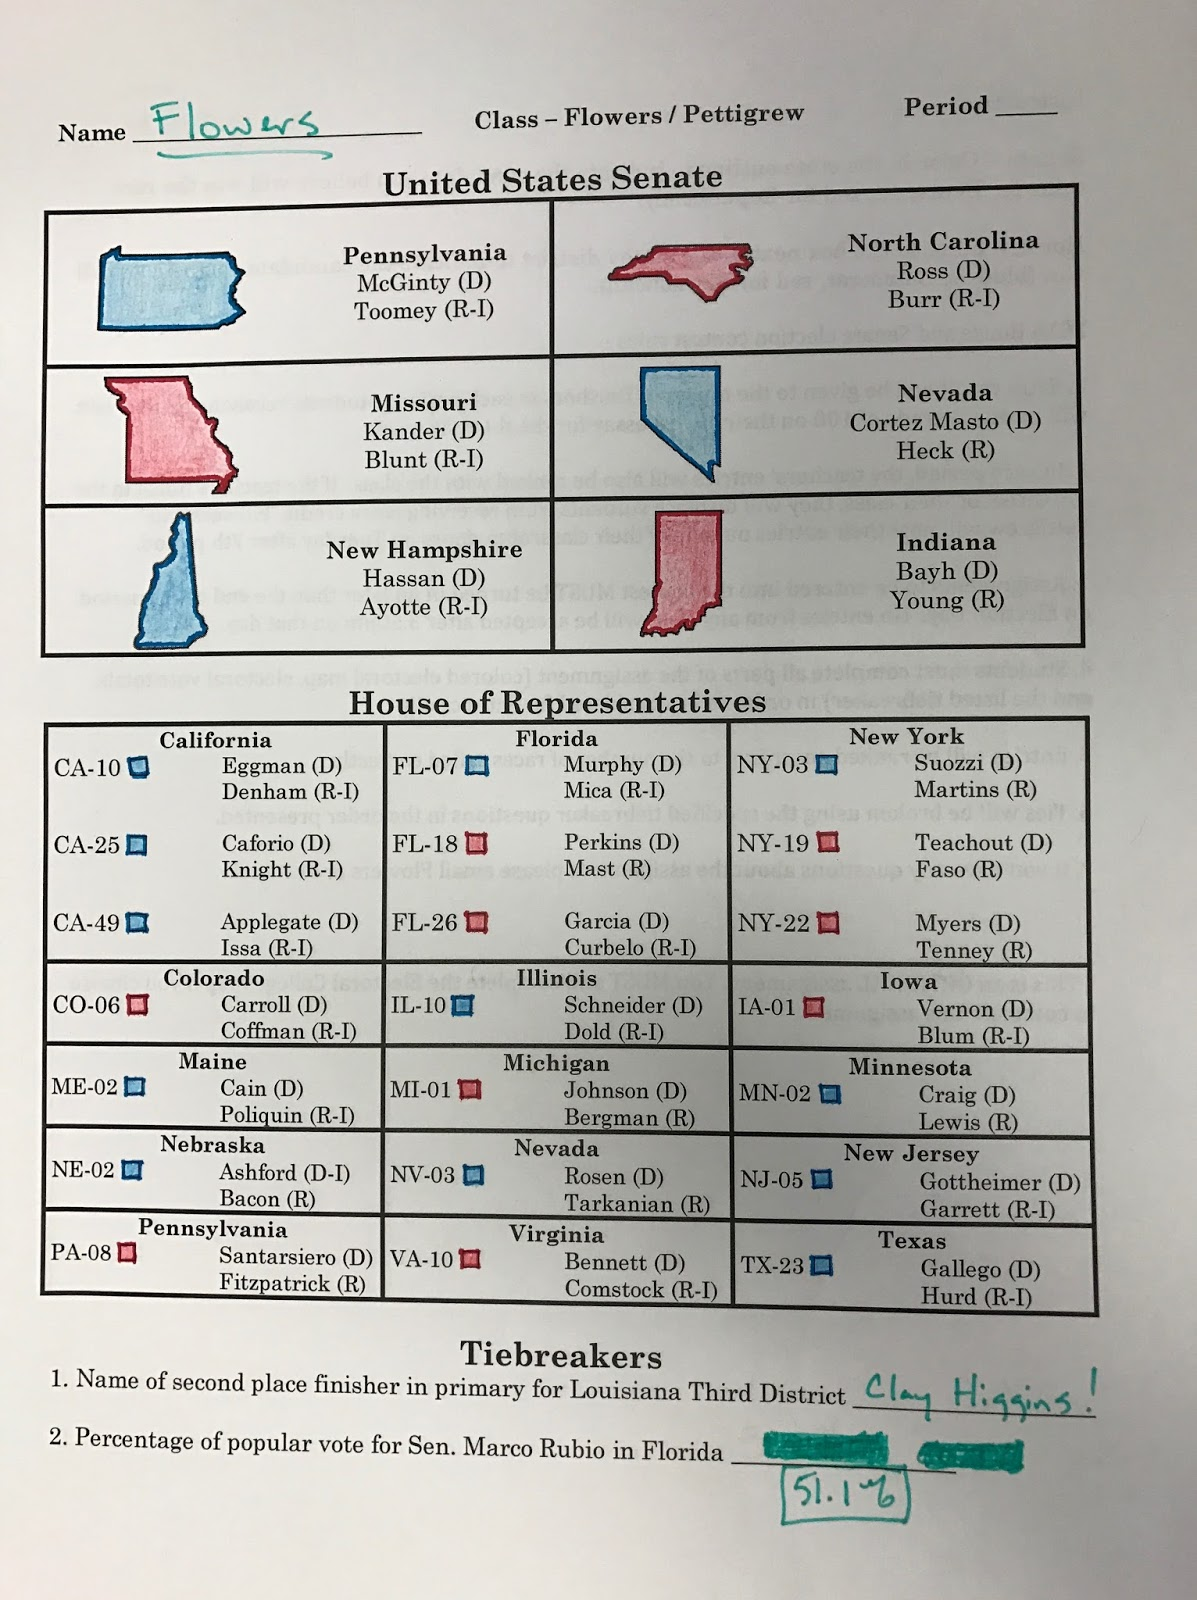 here they are the official flowers and pettigrew prediction maps good luck to everyone